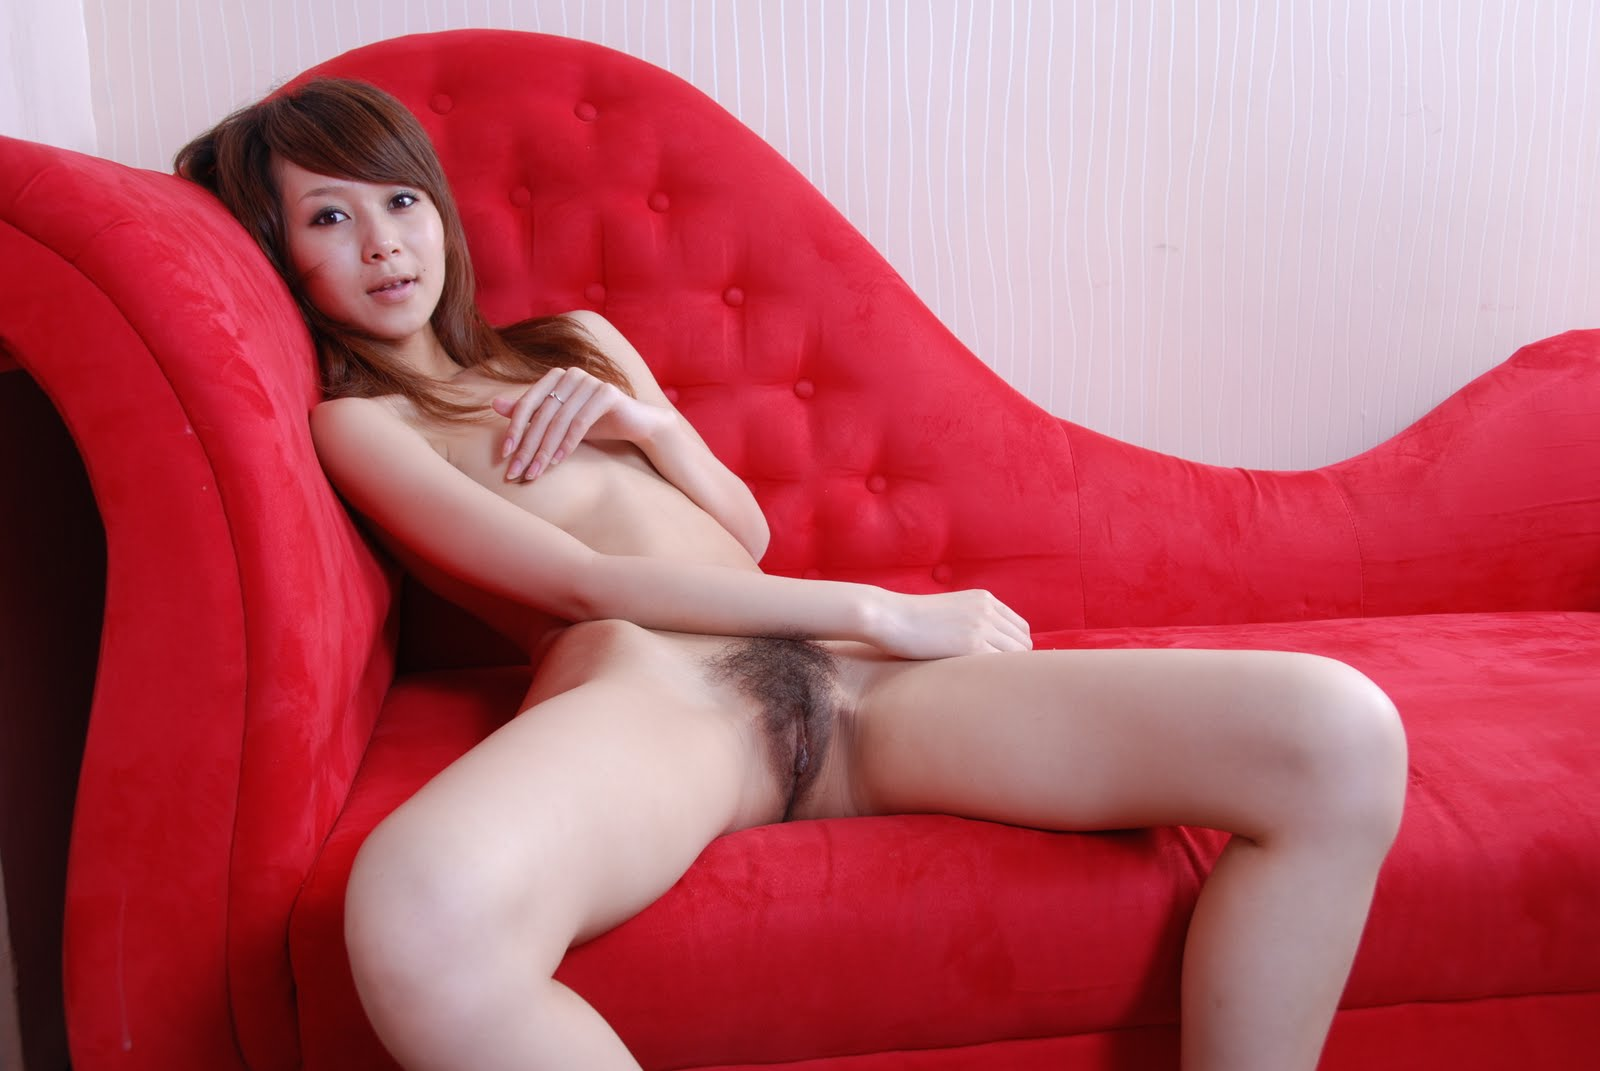 That can I am a taiwan girl nude your